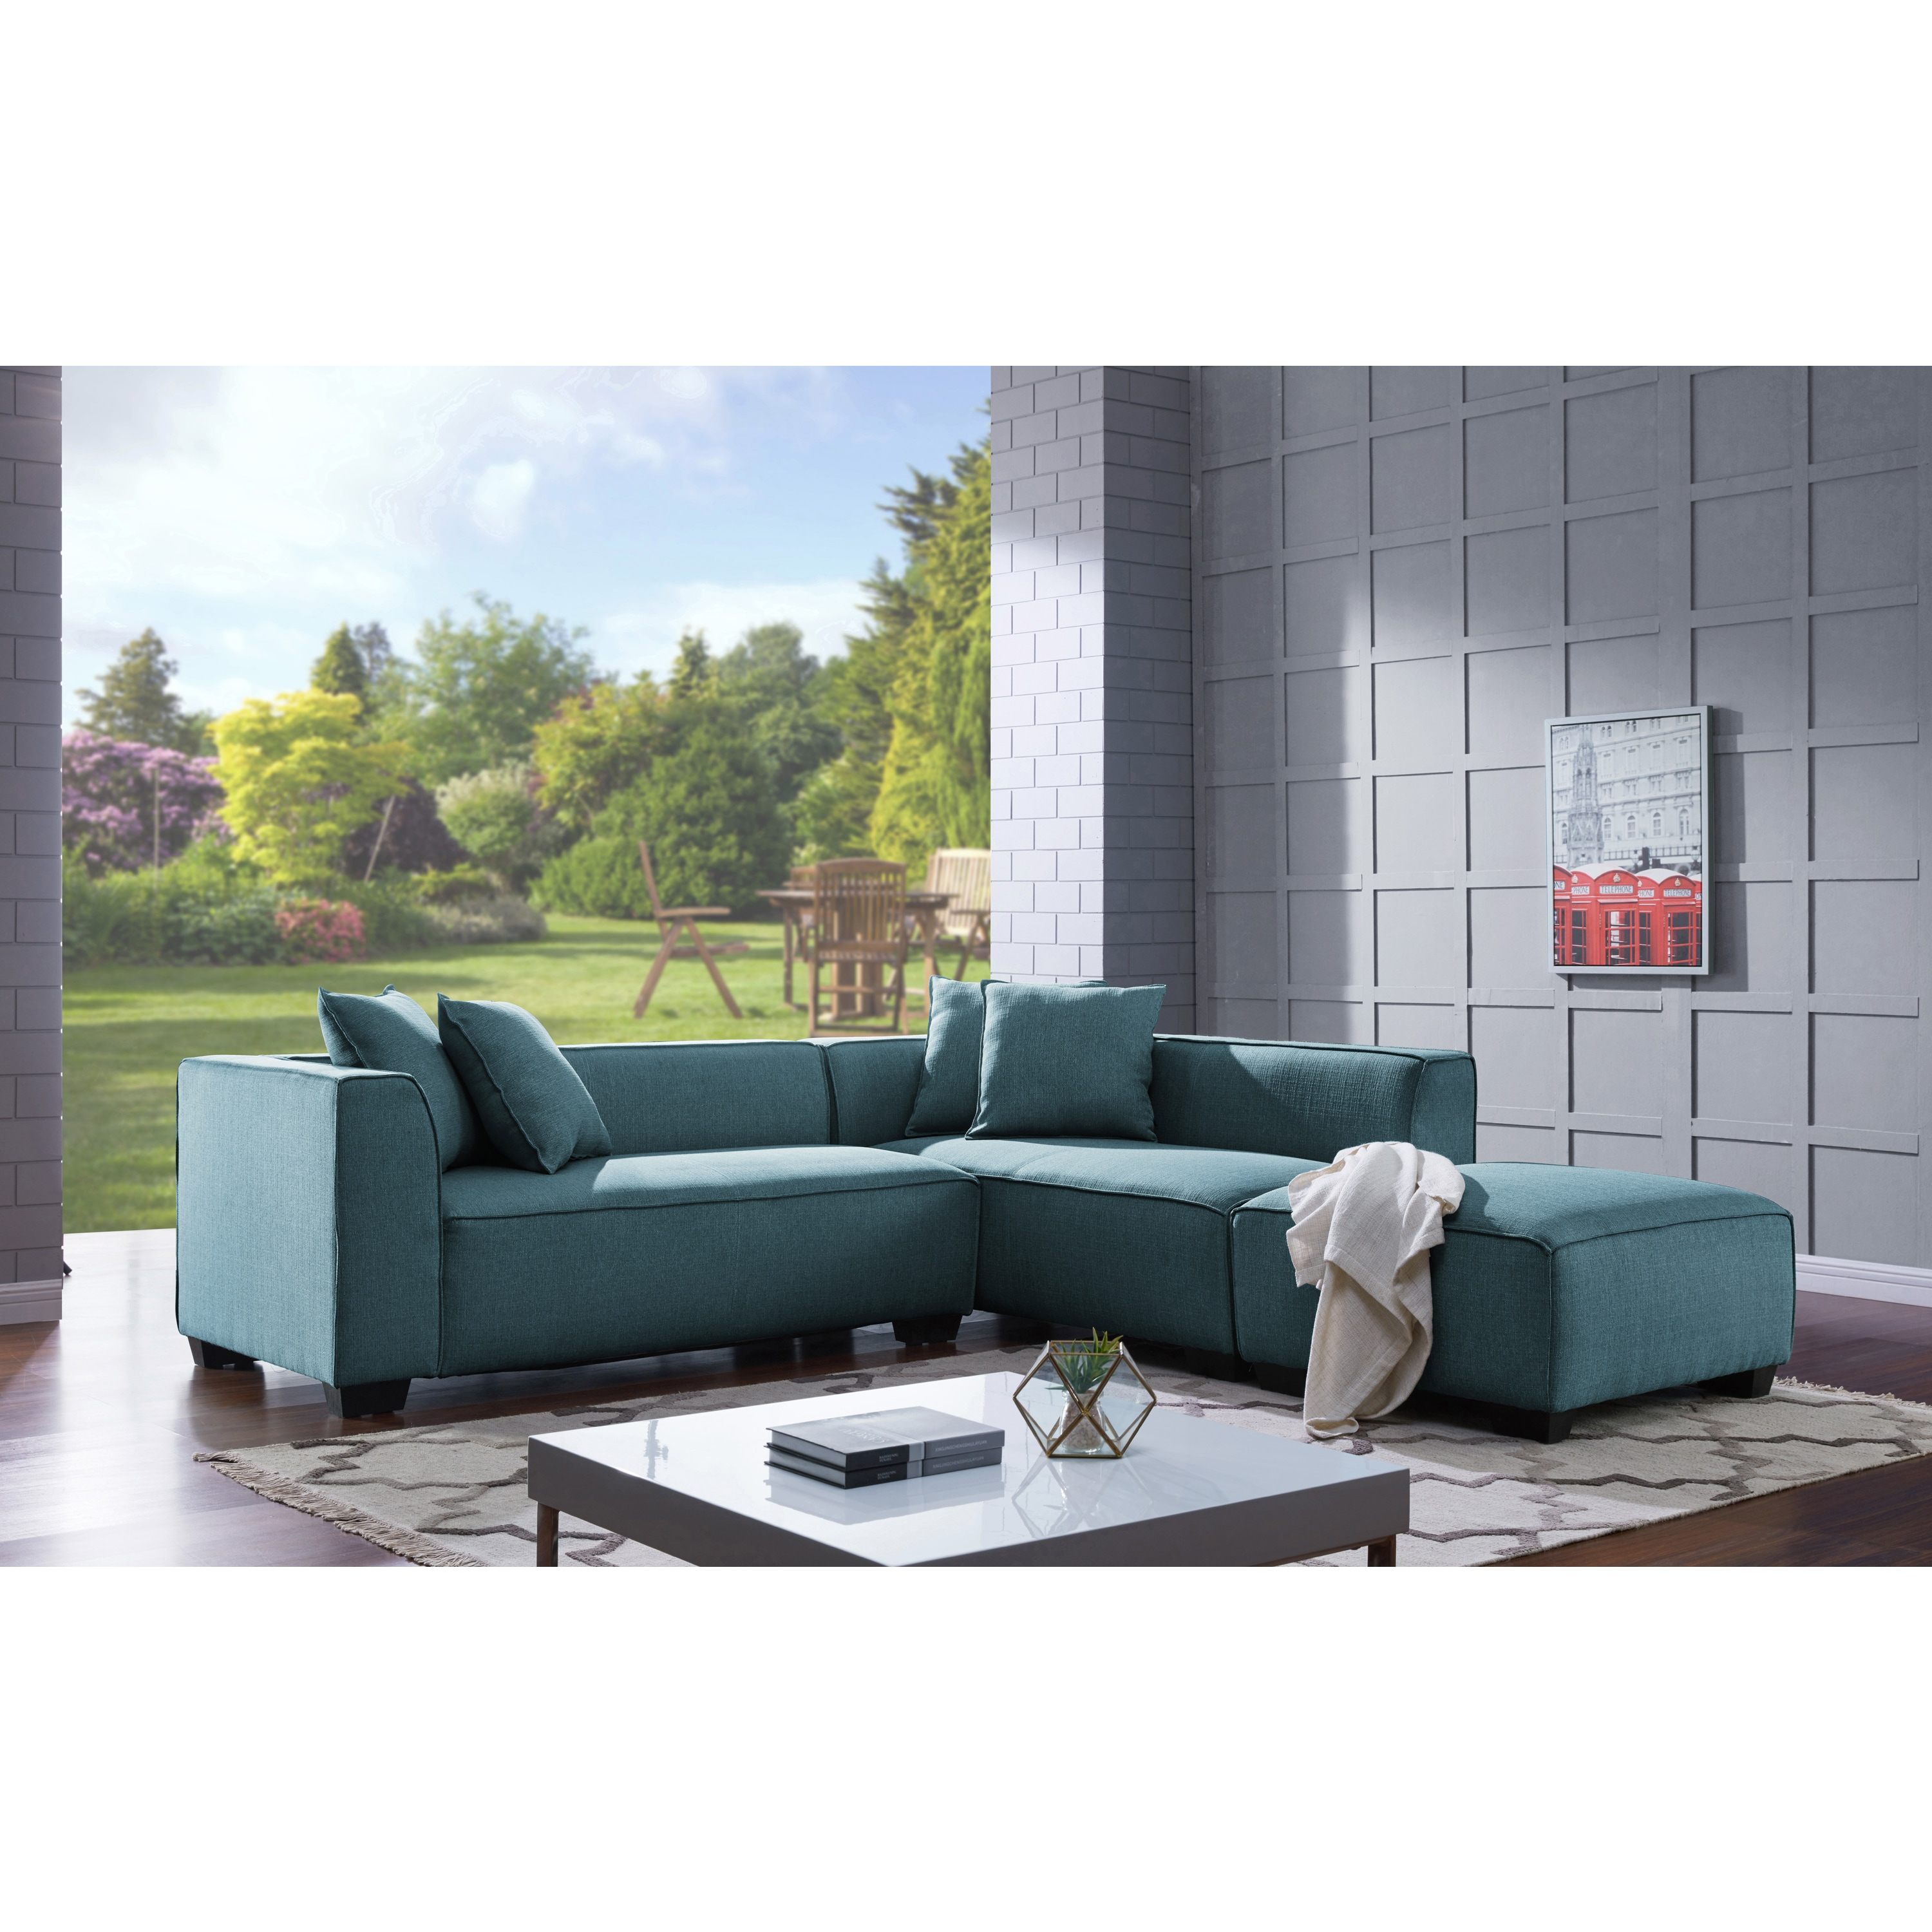 Picture of: Handy Living Phoenix Blue Sectional Sofa With Ottoman Overstock 18058315